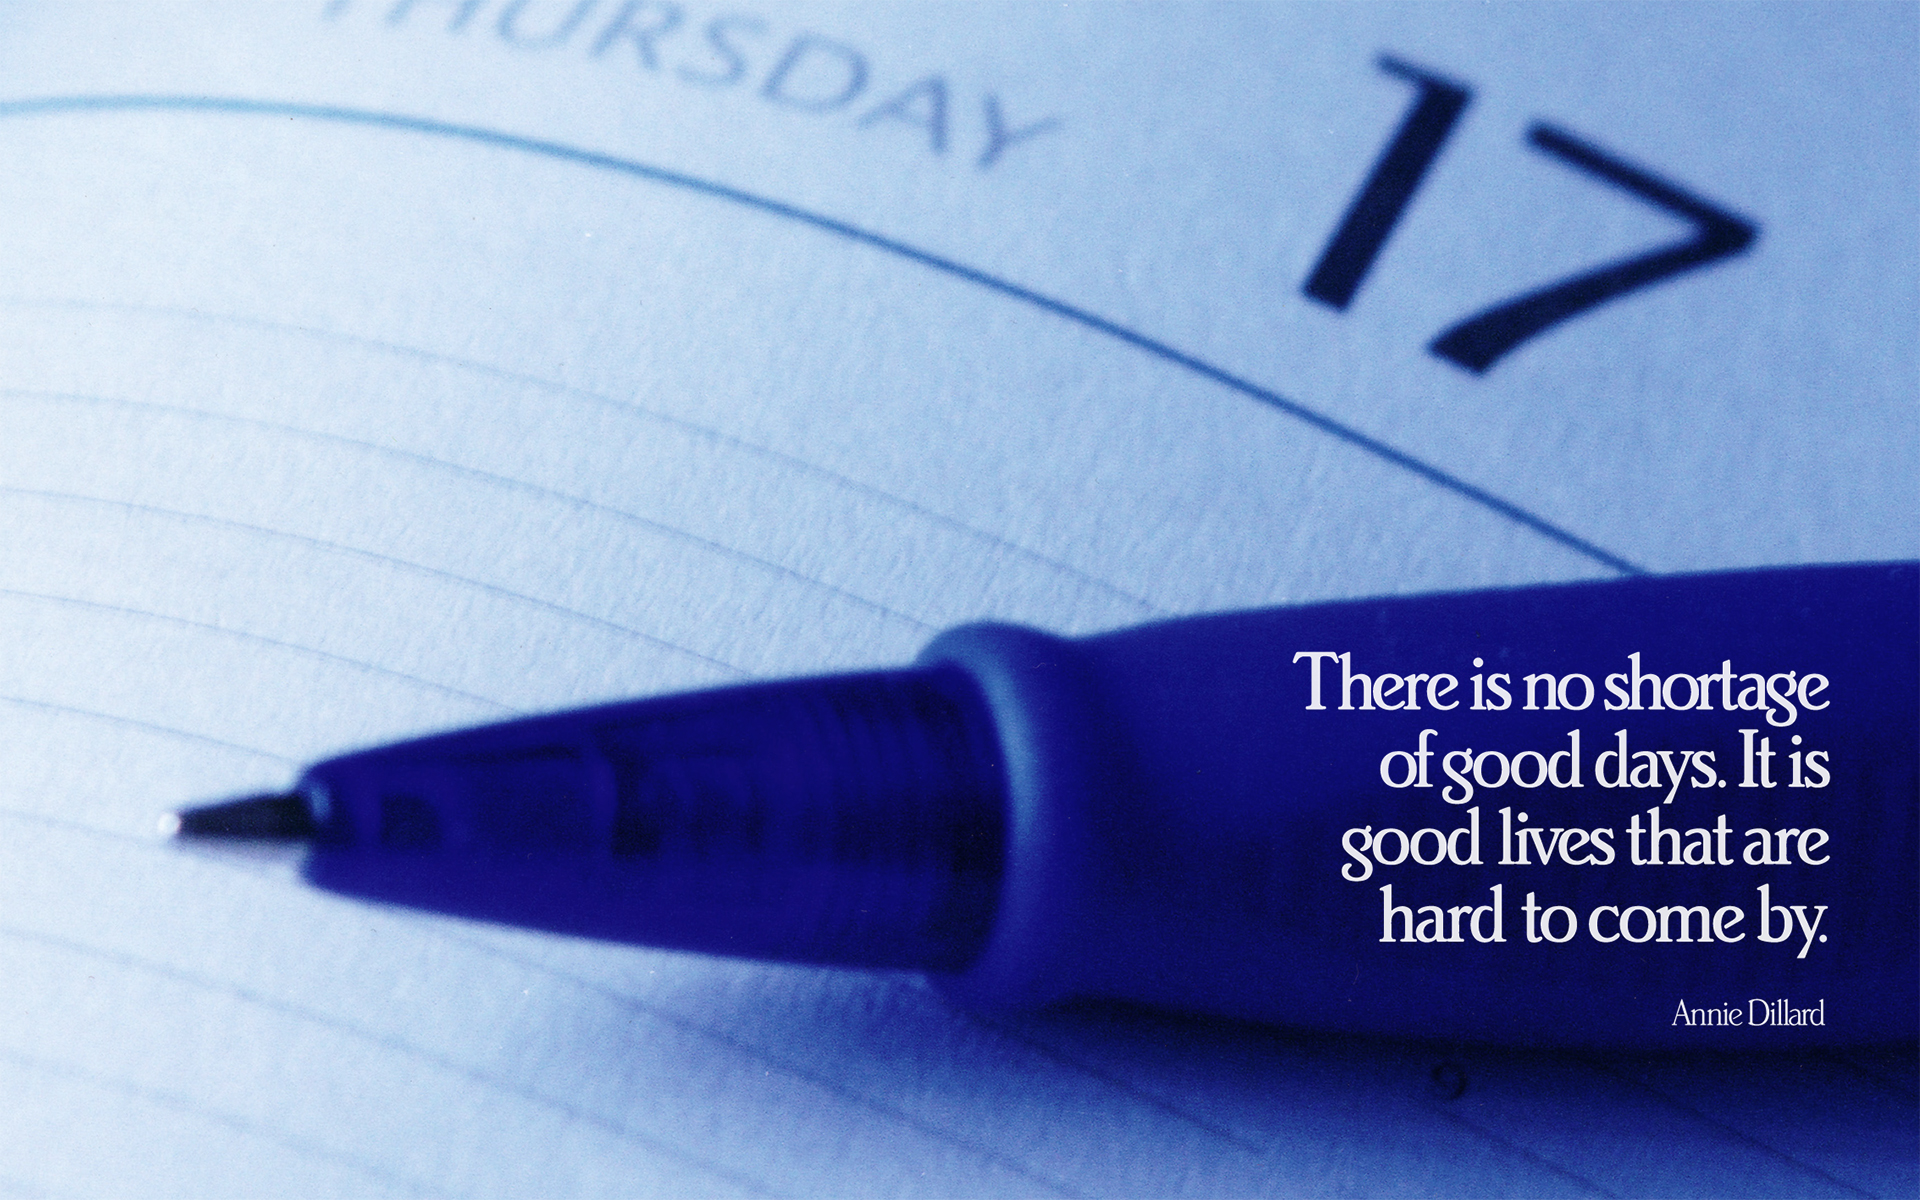 There is no shortage of good days. It is good lives that are hard to come by. https://inspirational.ly